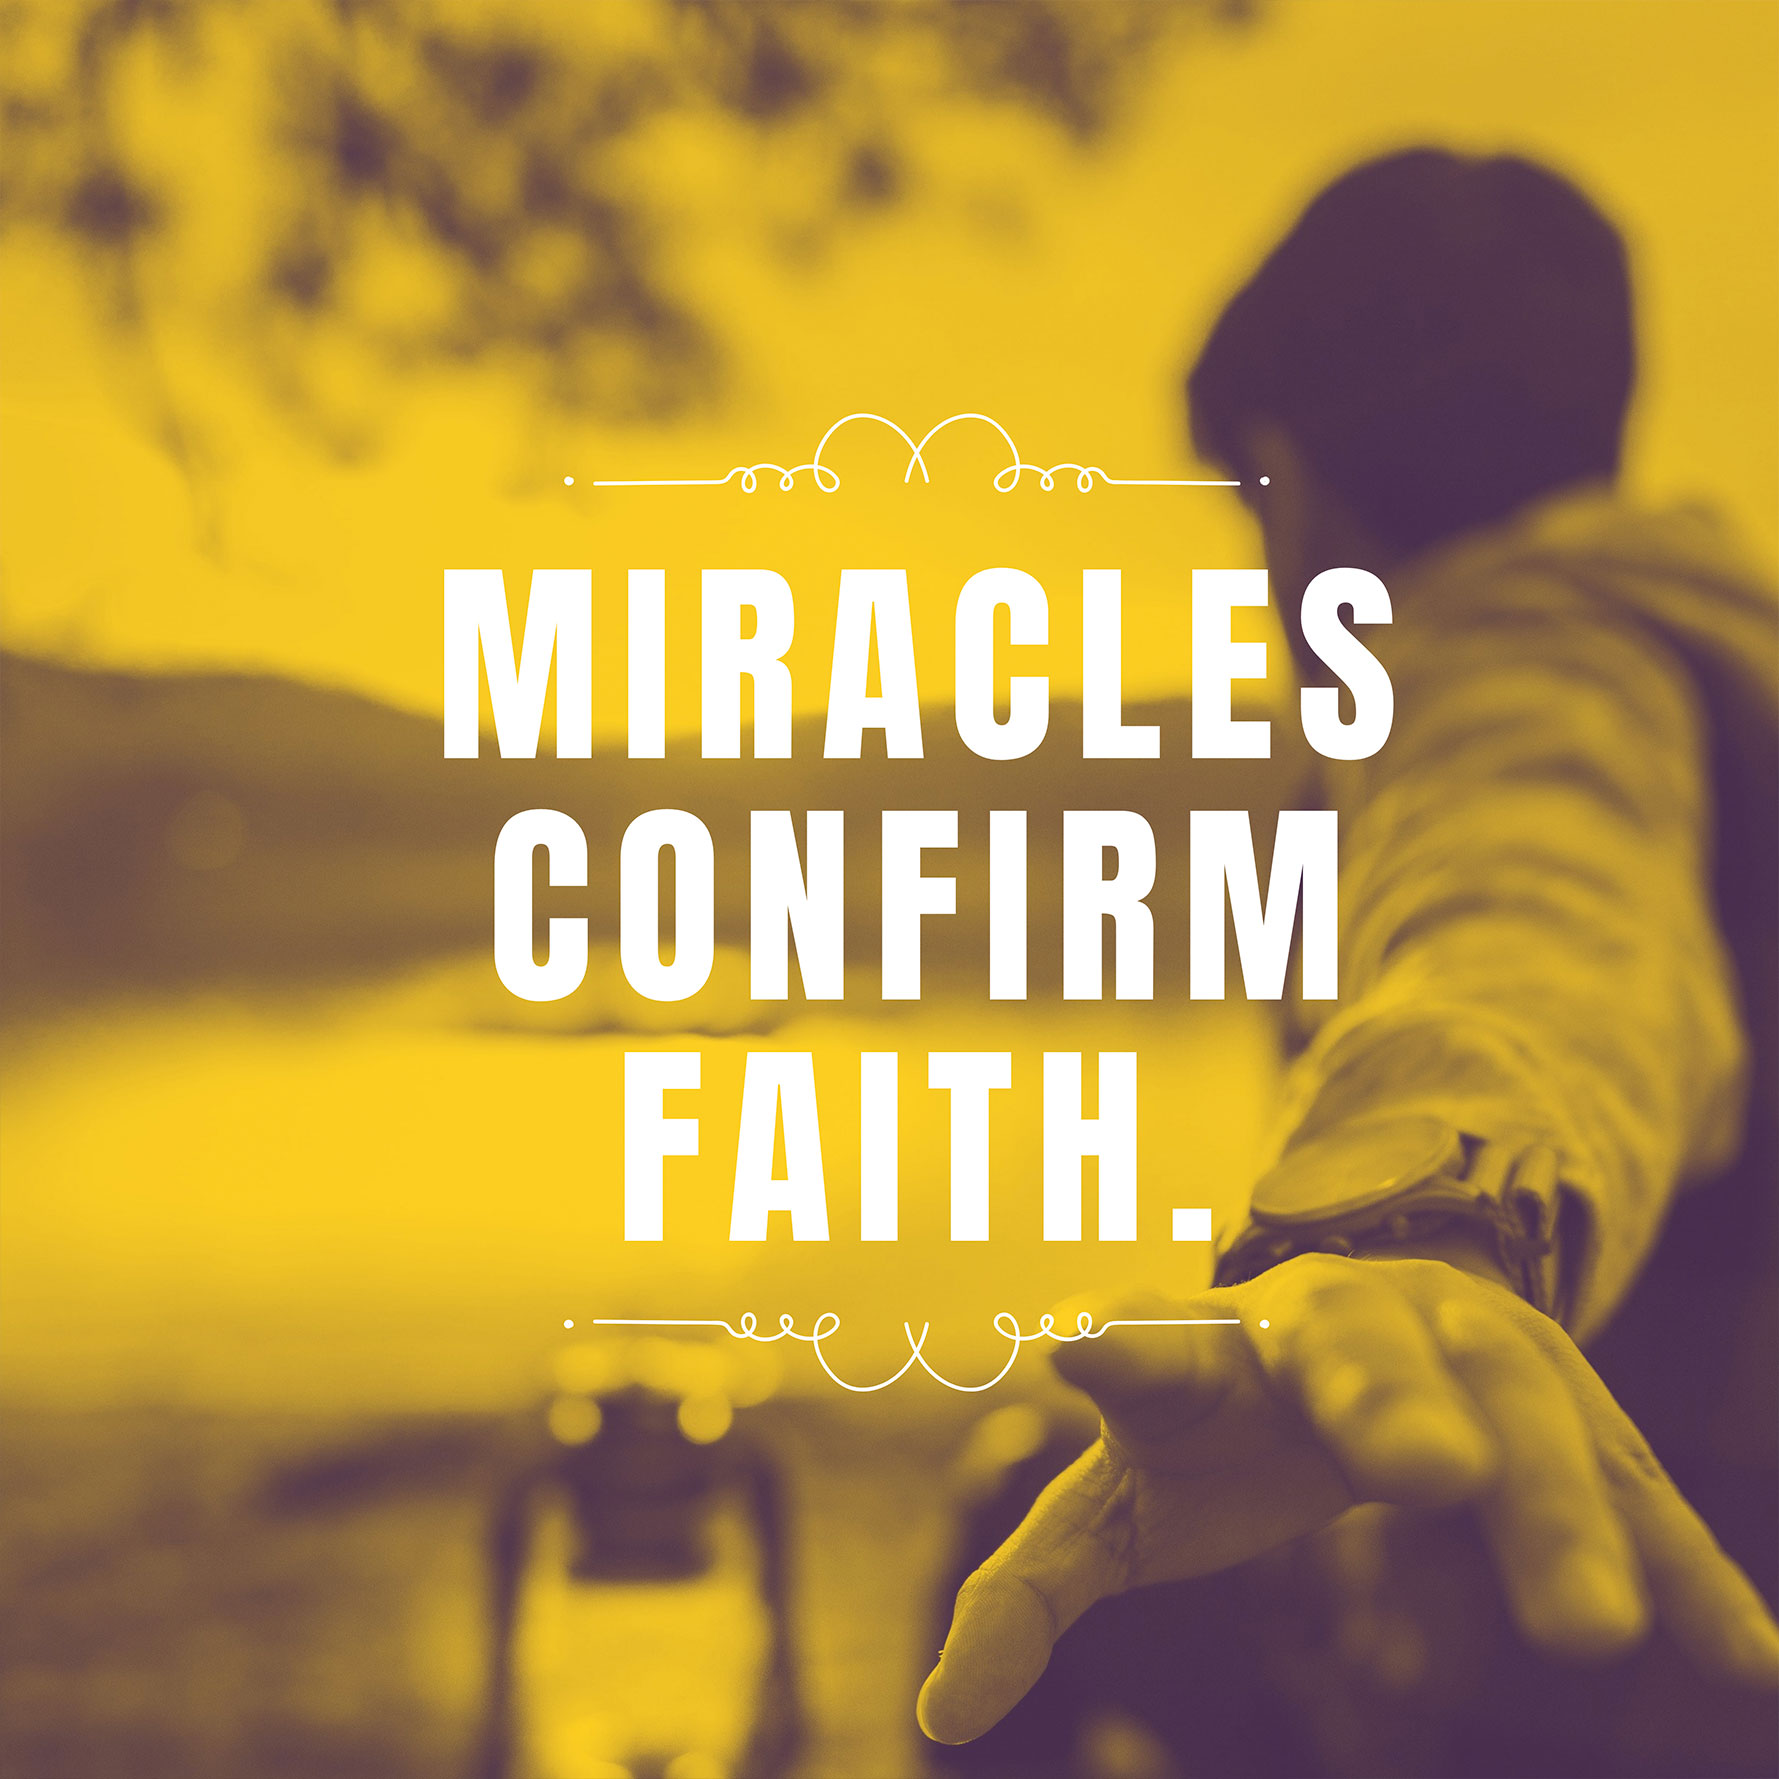 Socialpost Miracles Confirm Faith Download